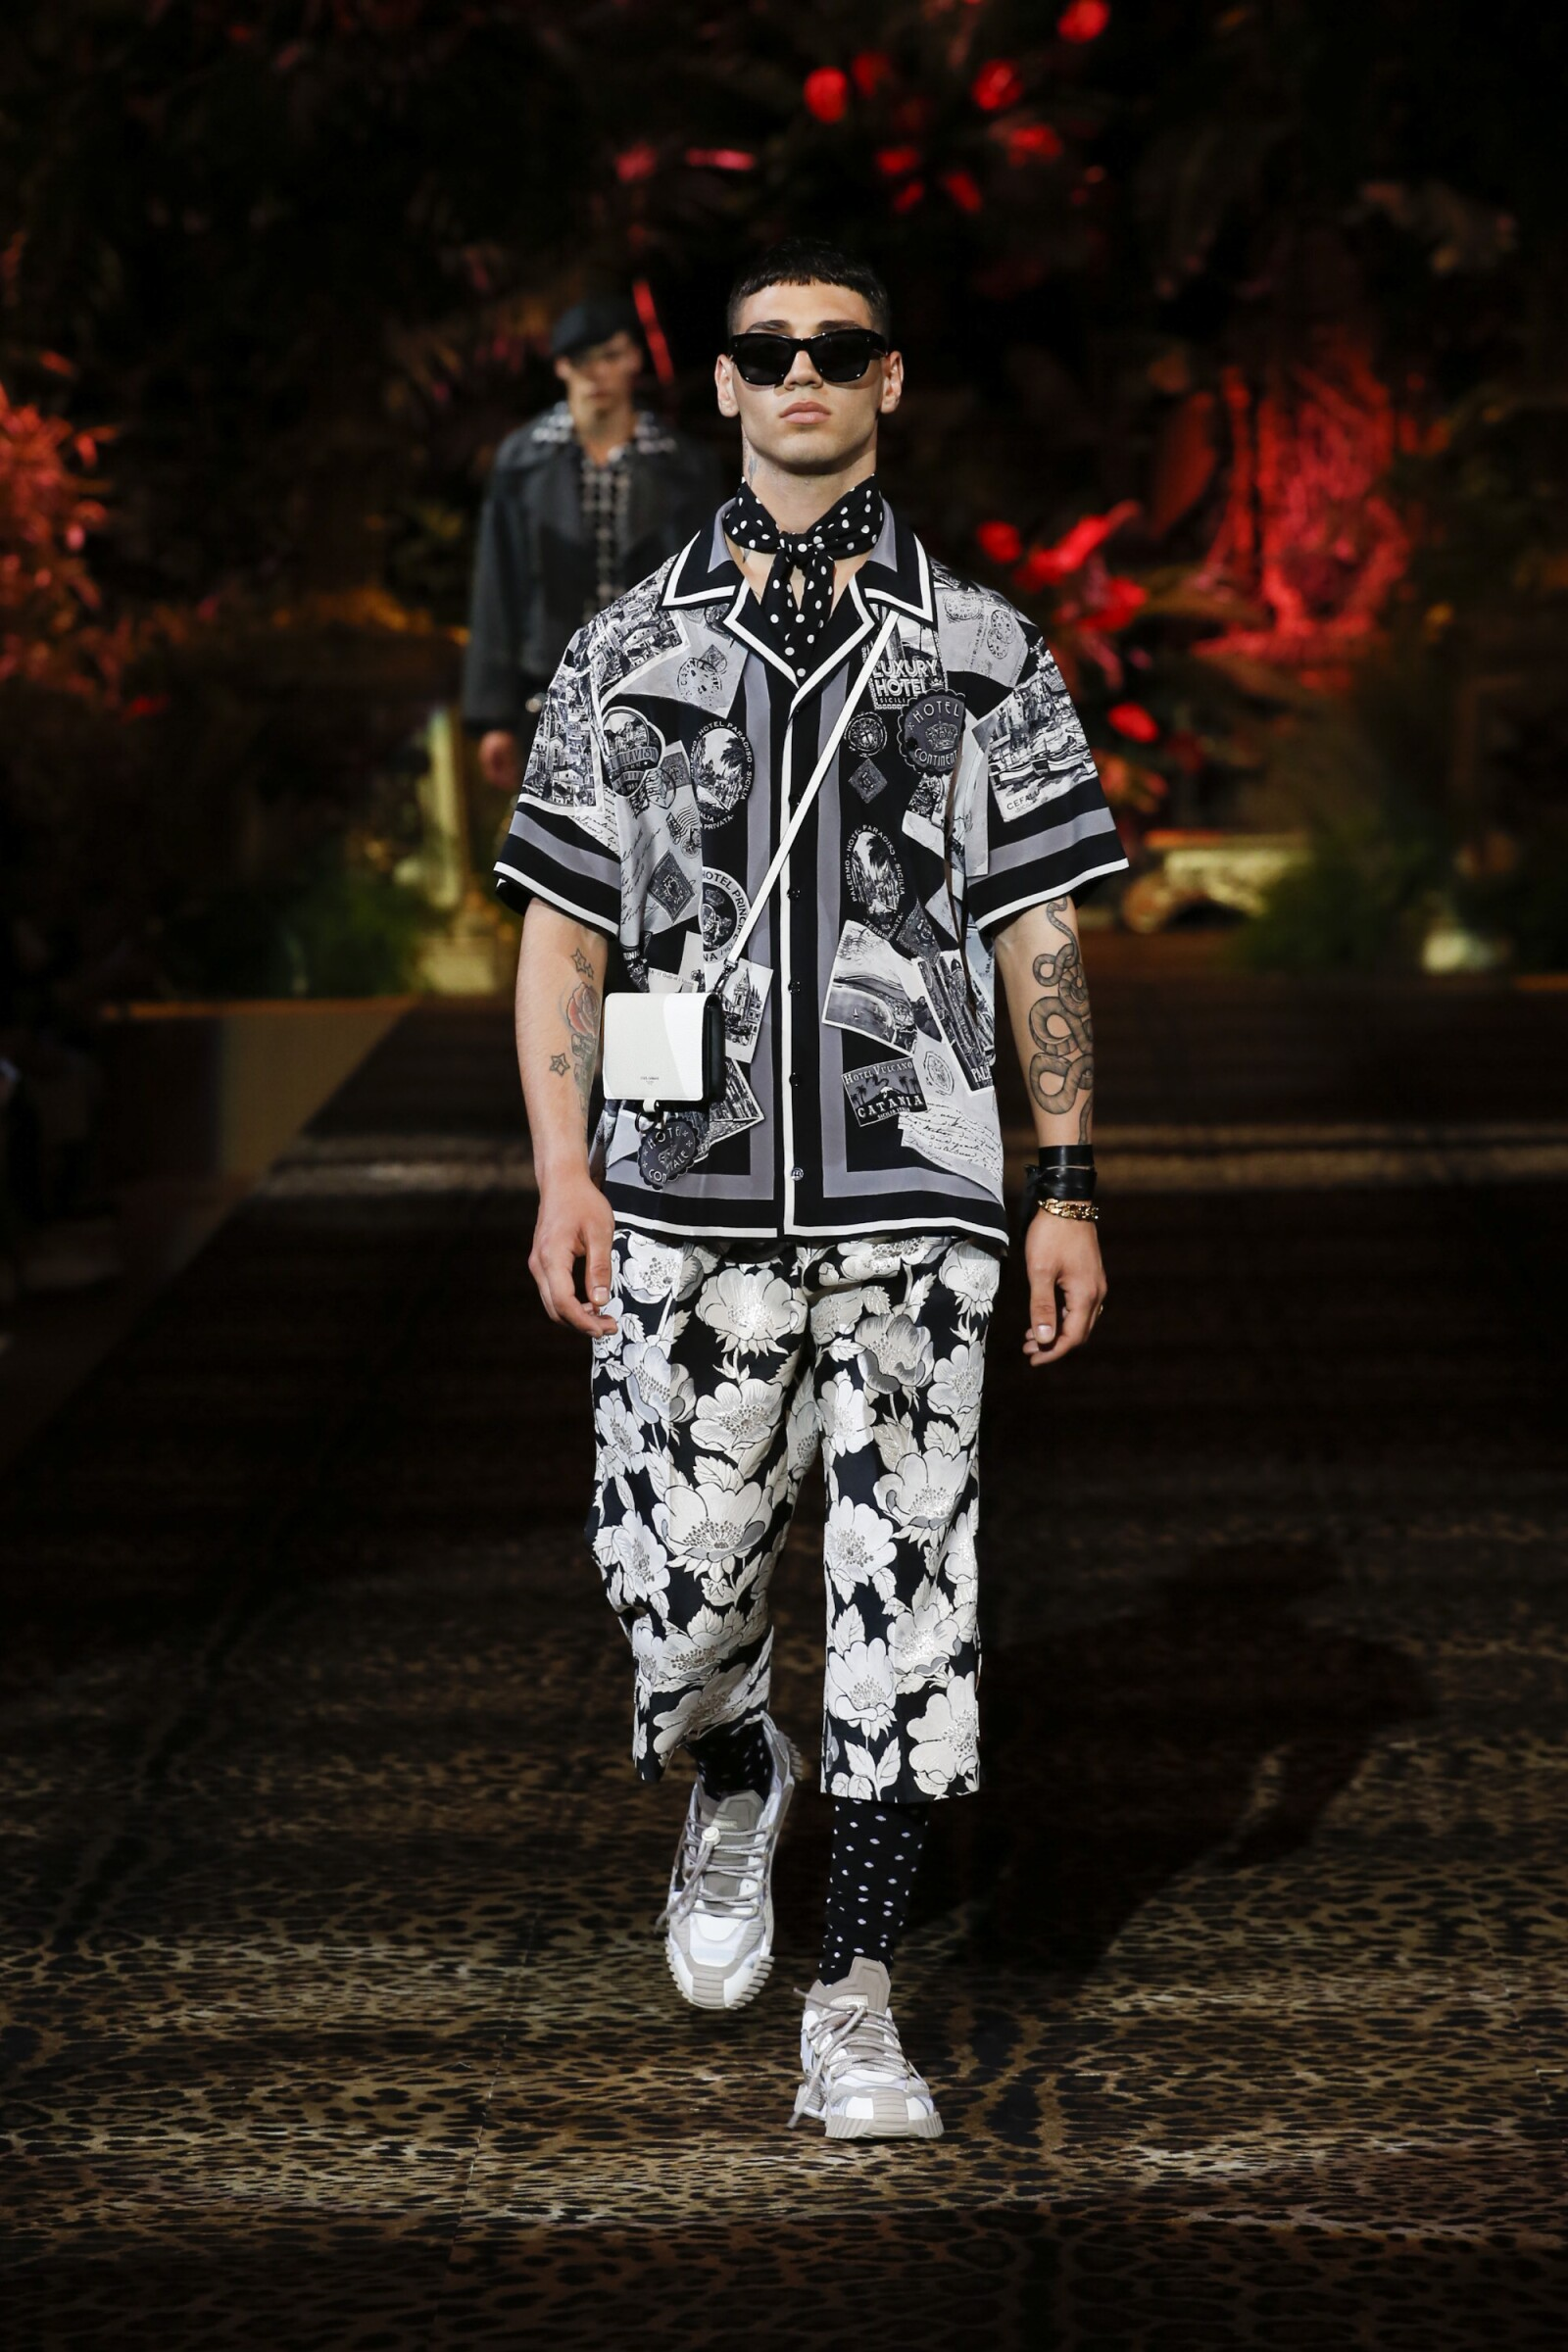 Dolce&Gabbana Men's Fashion Show Spring-Summer 2020 (59).jpg